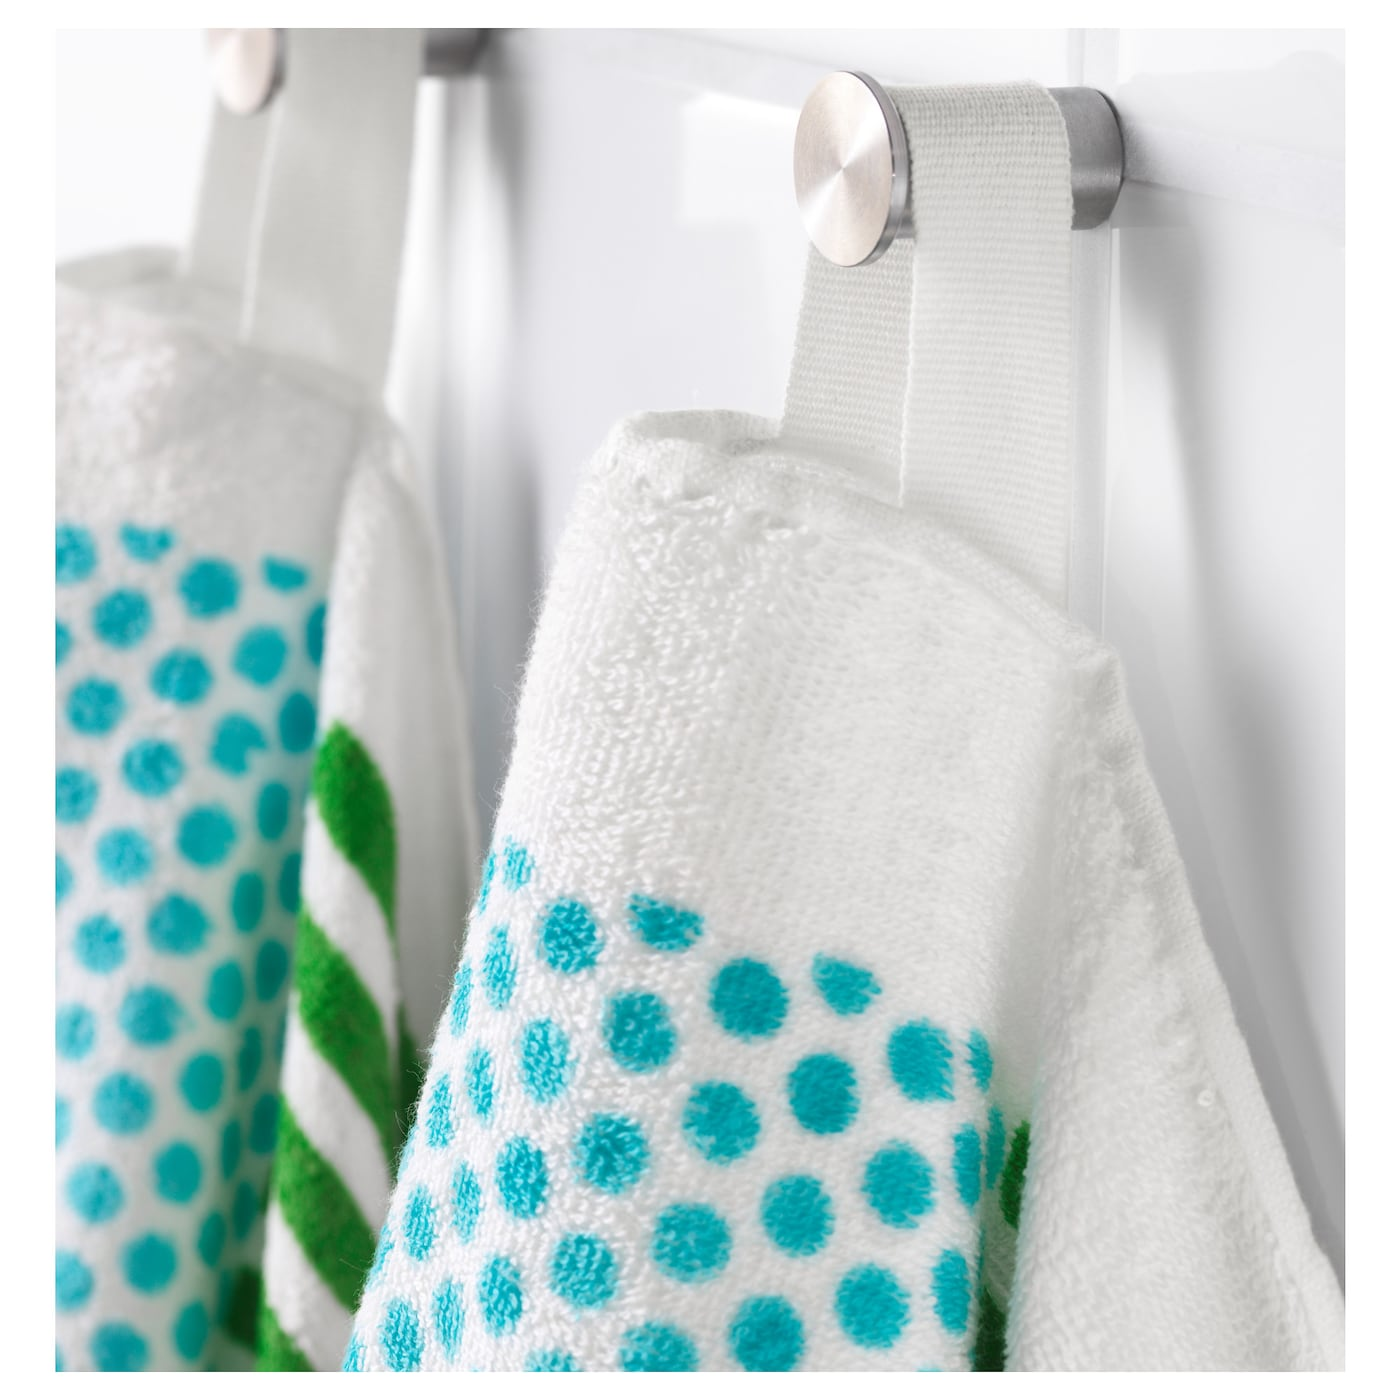 IKEA NIMMERN washcloth A terry towel that is soft and absorbent (weight 380 g/m²).